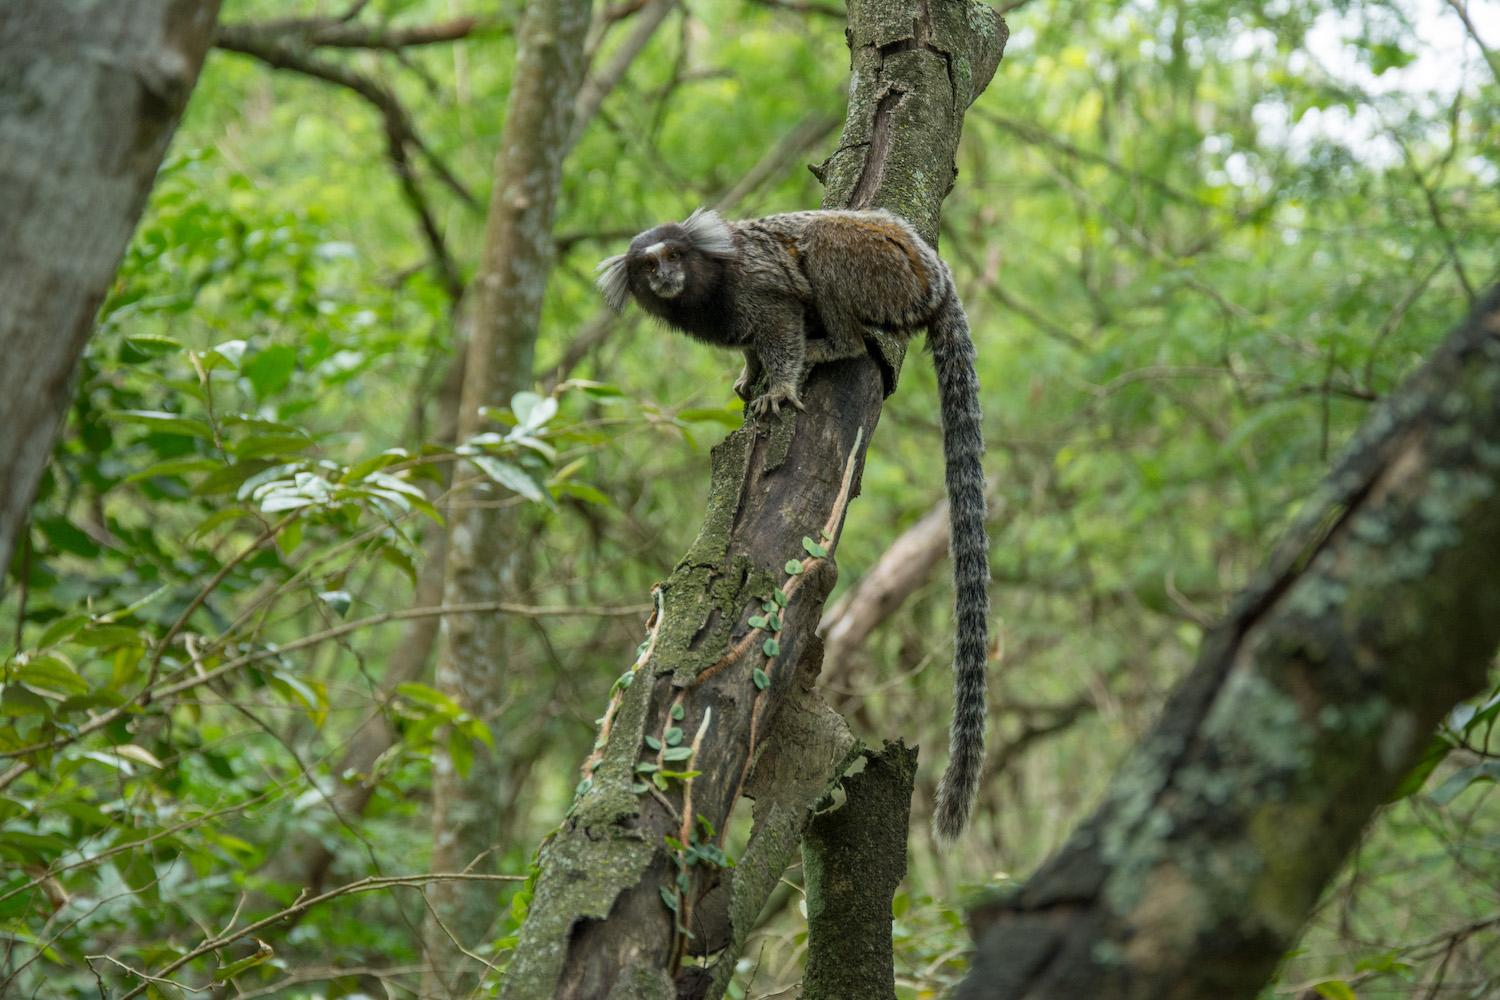 Saving Neglected Forests - Marmoset in the Atlantic Forest